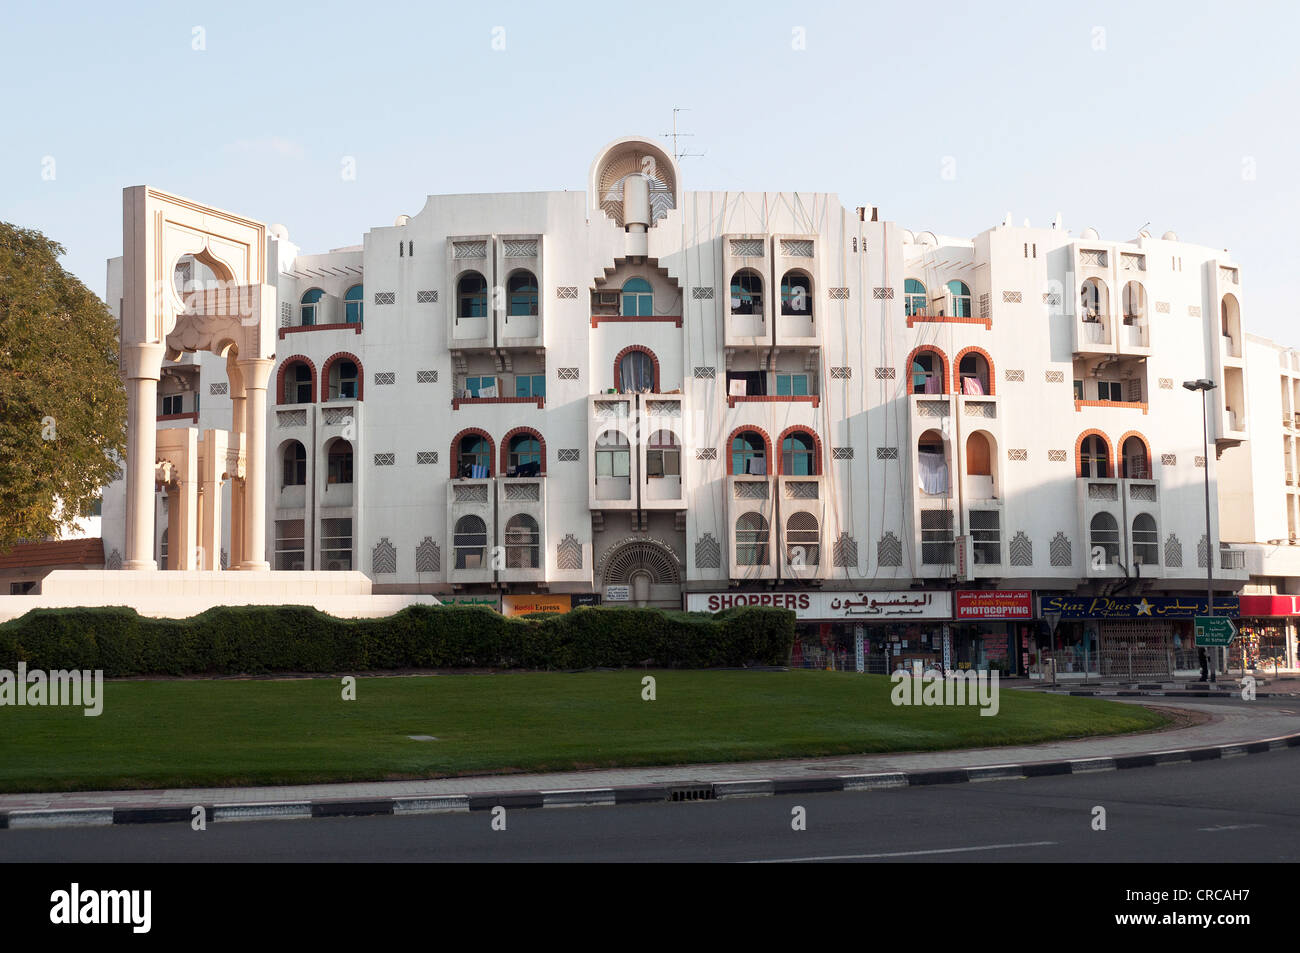 Elk206-2164 United Arab Emirates, Dubai, Bur Dubai, apartment complex